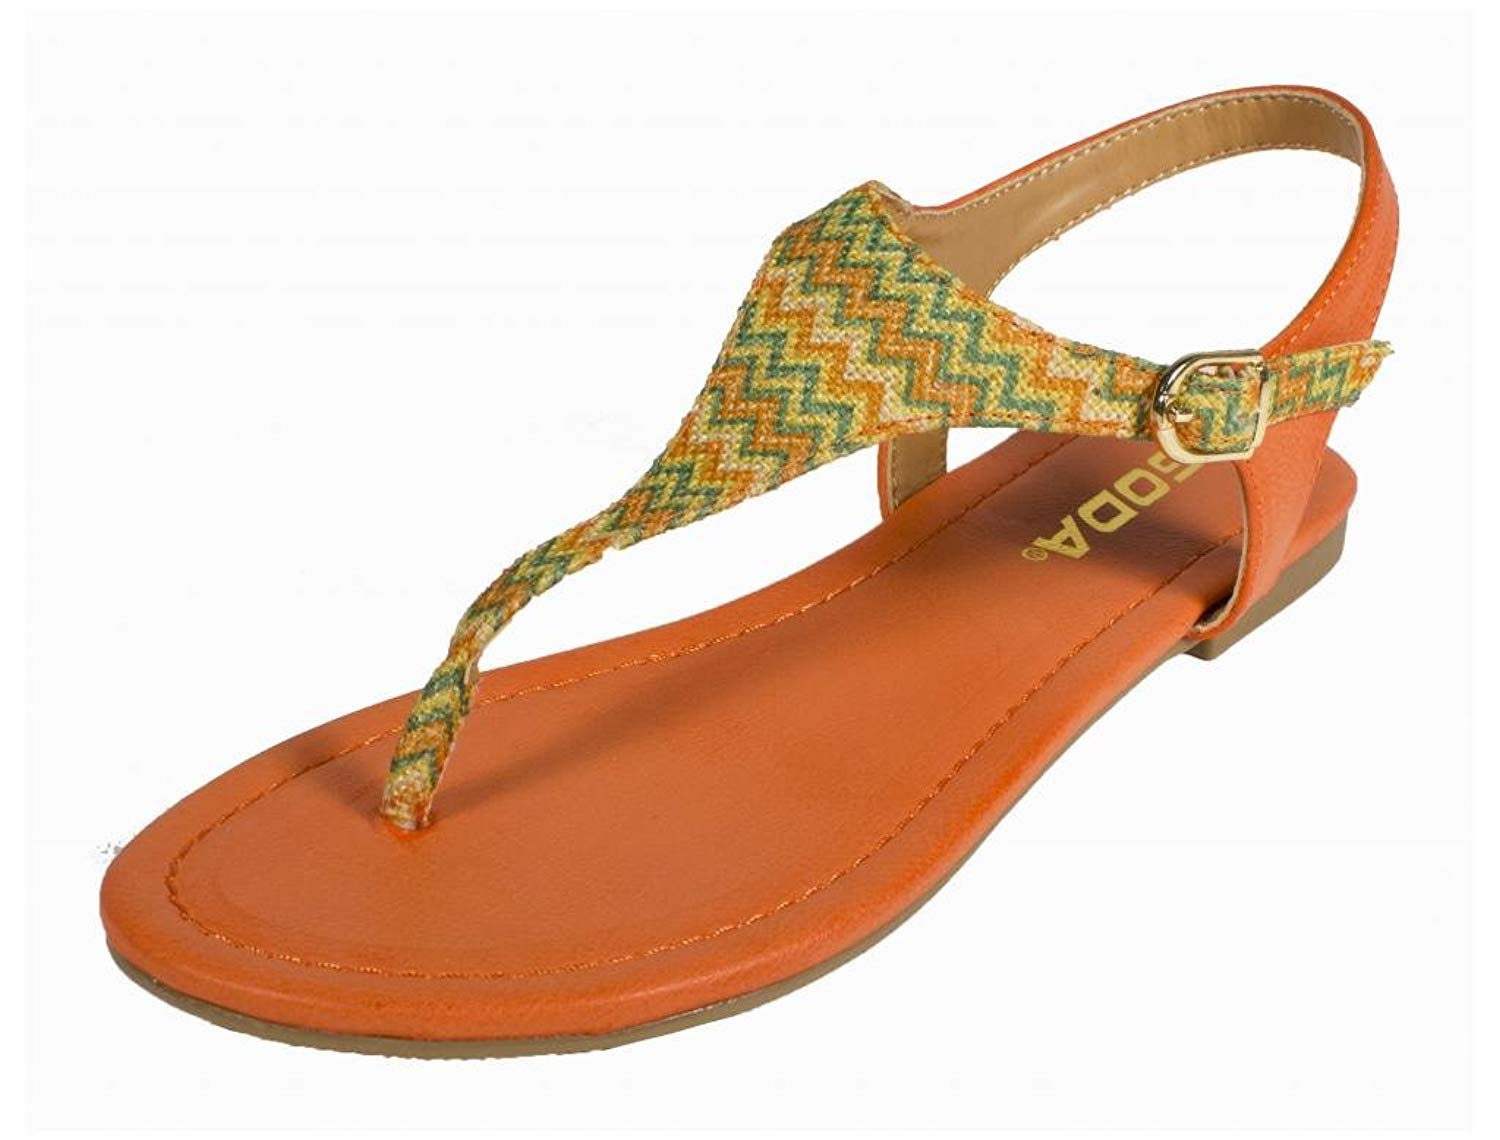 Mochi! Soda Women's Woven Zig Zag Colorful Pattern T-strap Thong Flat Sandals in Orange Leatherette with Multi Colored T-Strap